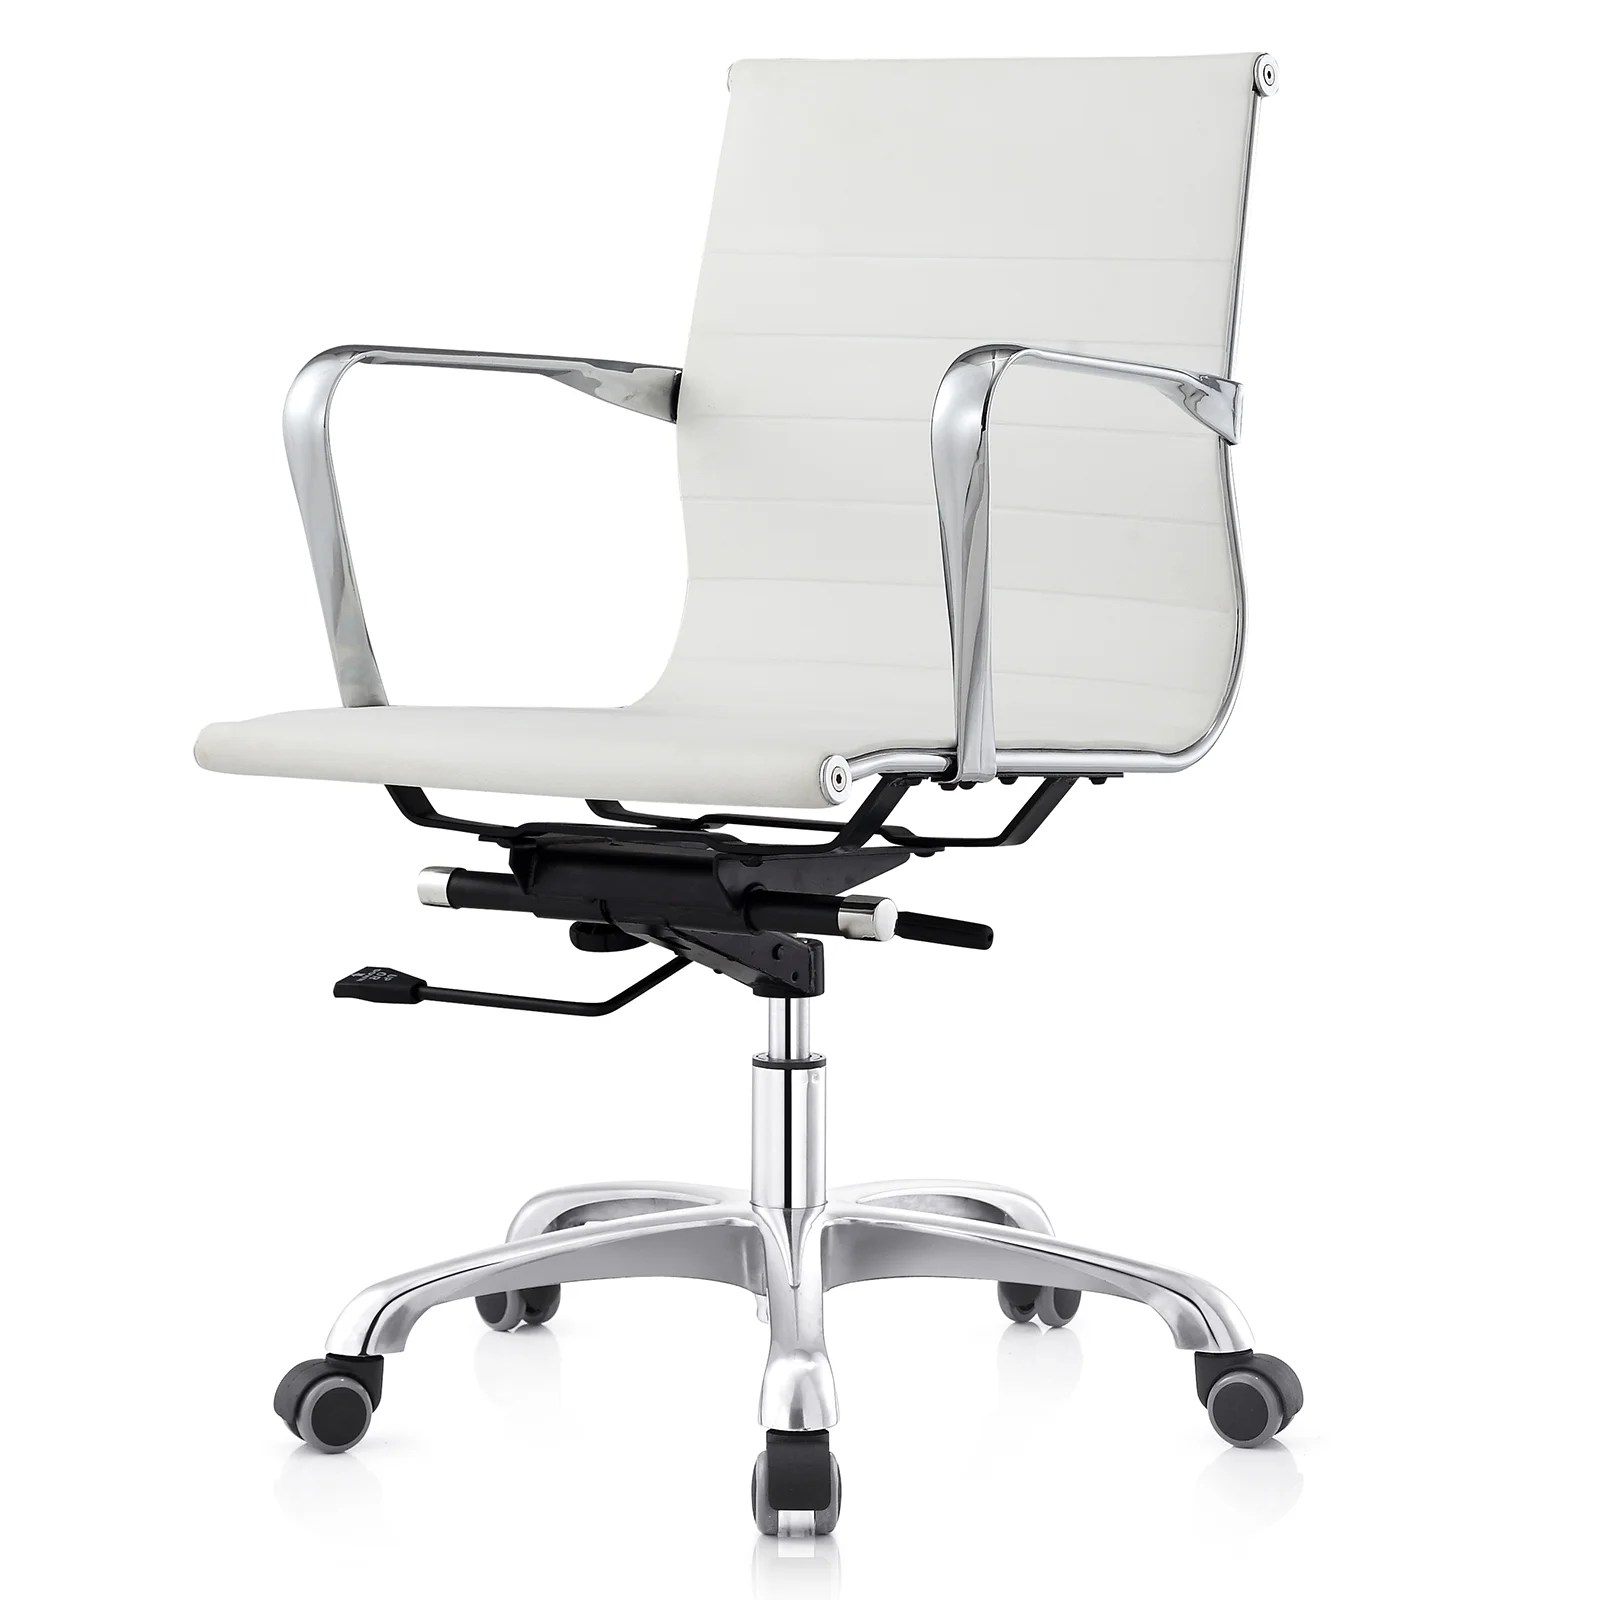 office chair overstock sit to stand recliner executive chairs shopping the best